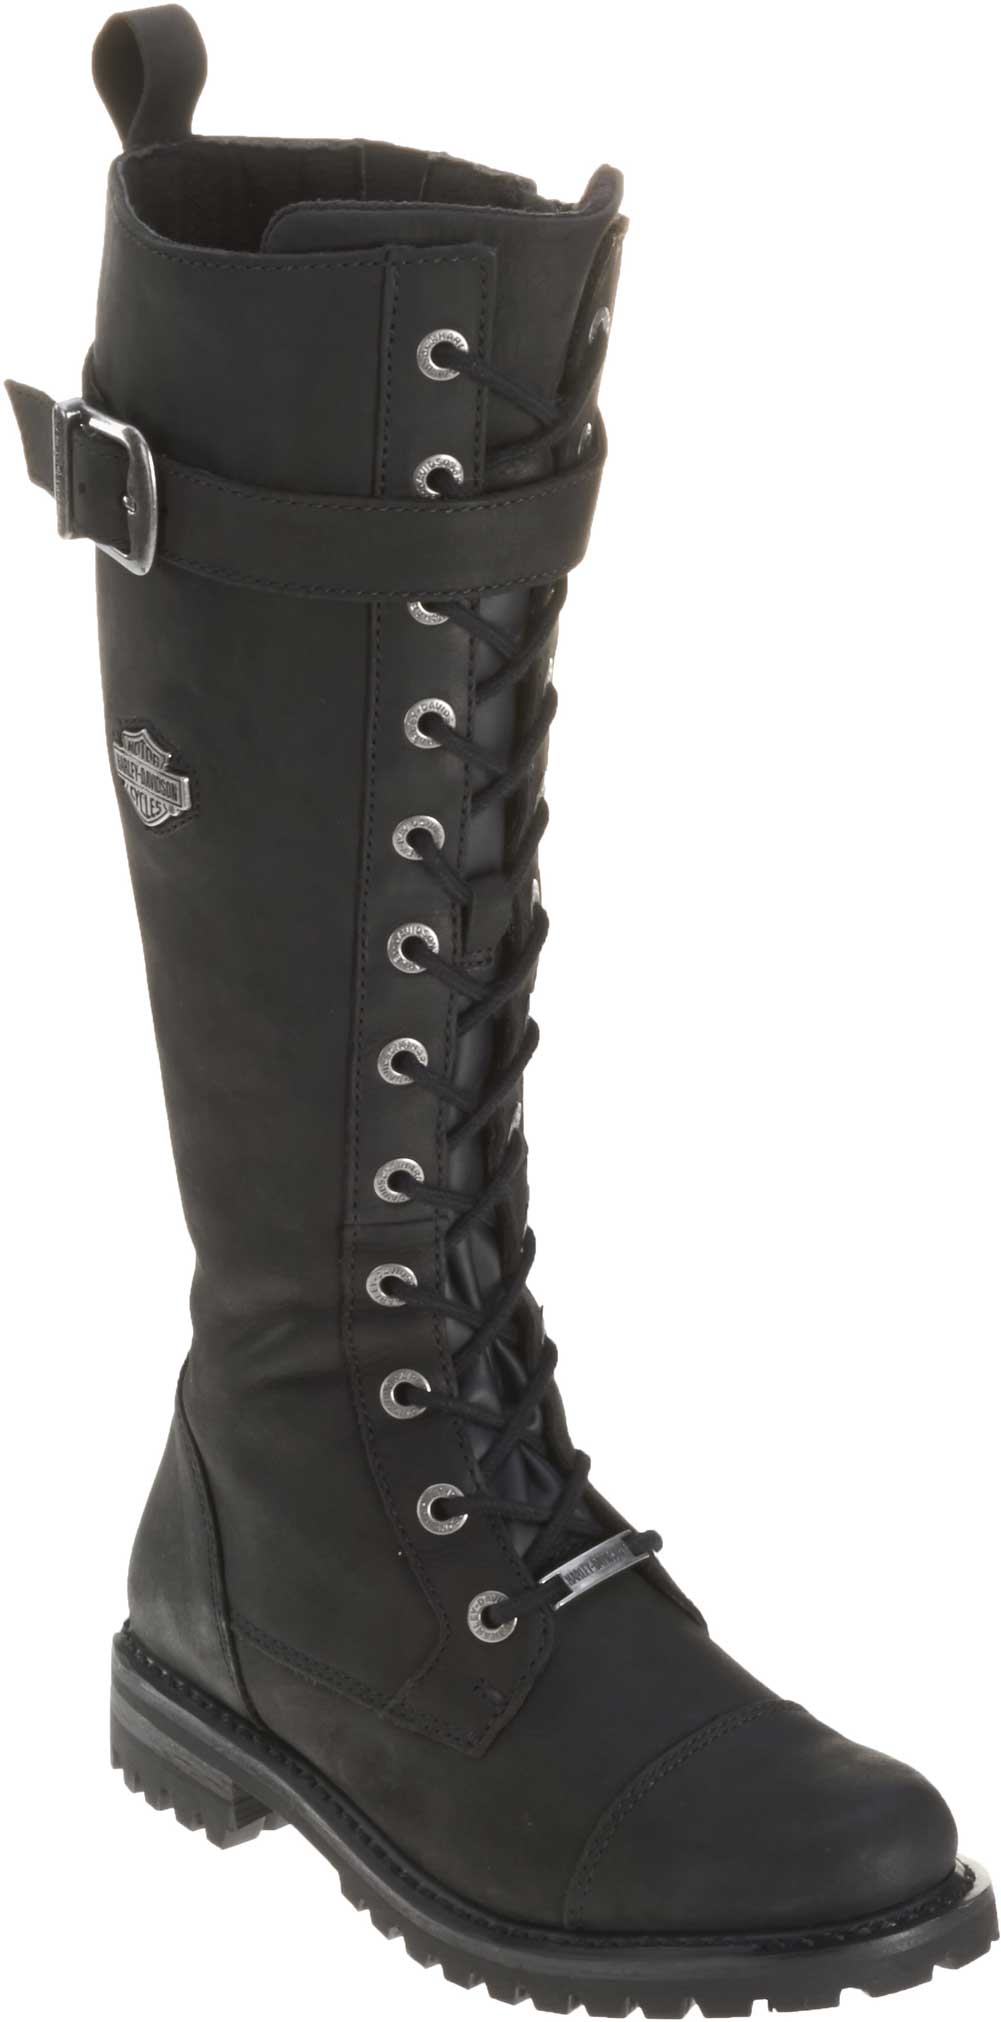 8fb3027180d Harley-Davidson Women s Savannah Black Leather 14-Inch Motorcycle Boots  D81489